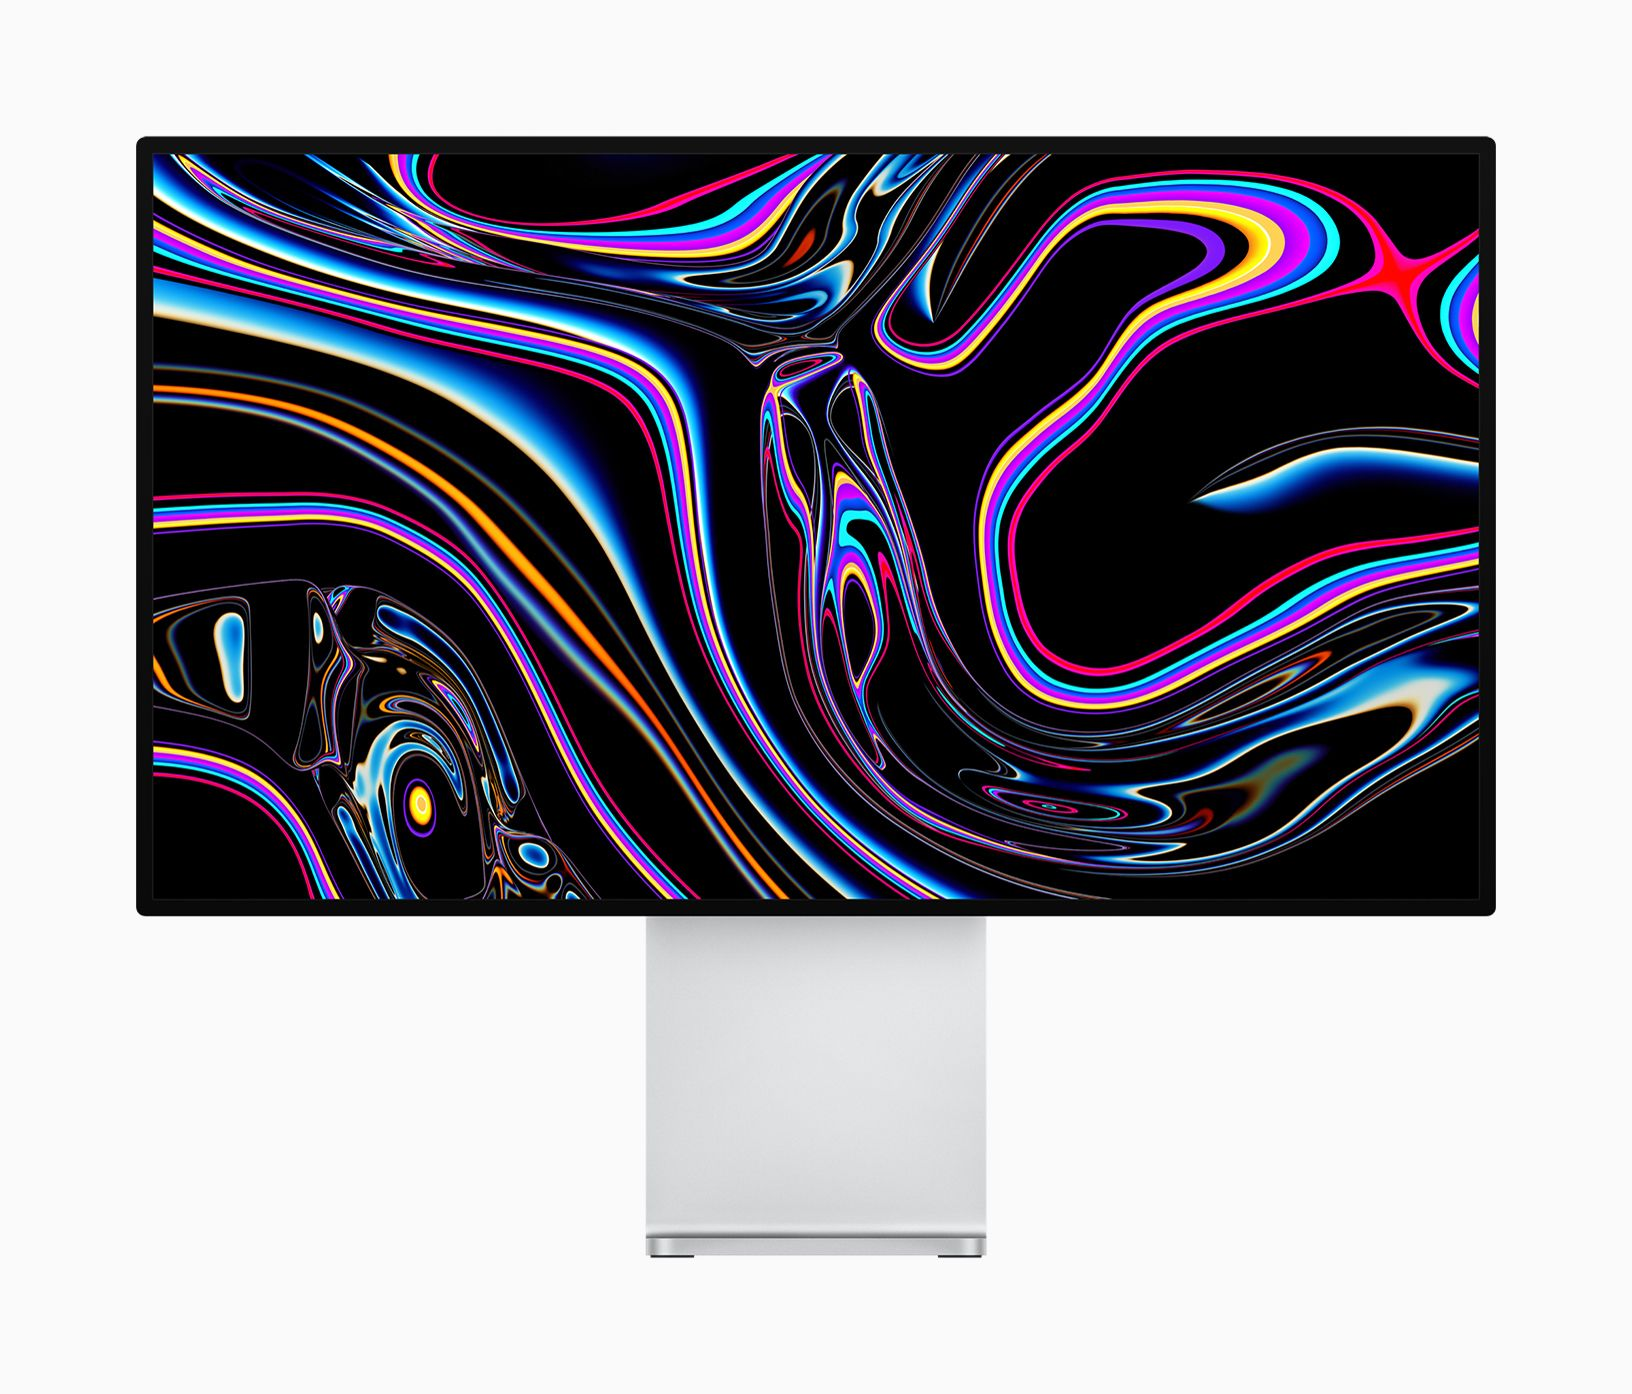 What's So Great About Apple's Pro Display XDR?